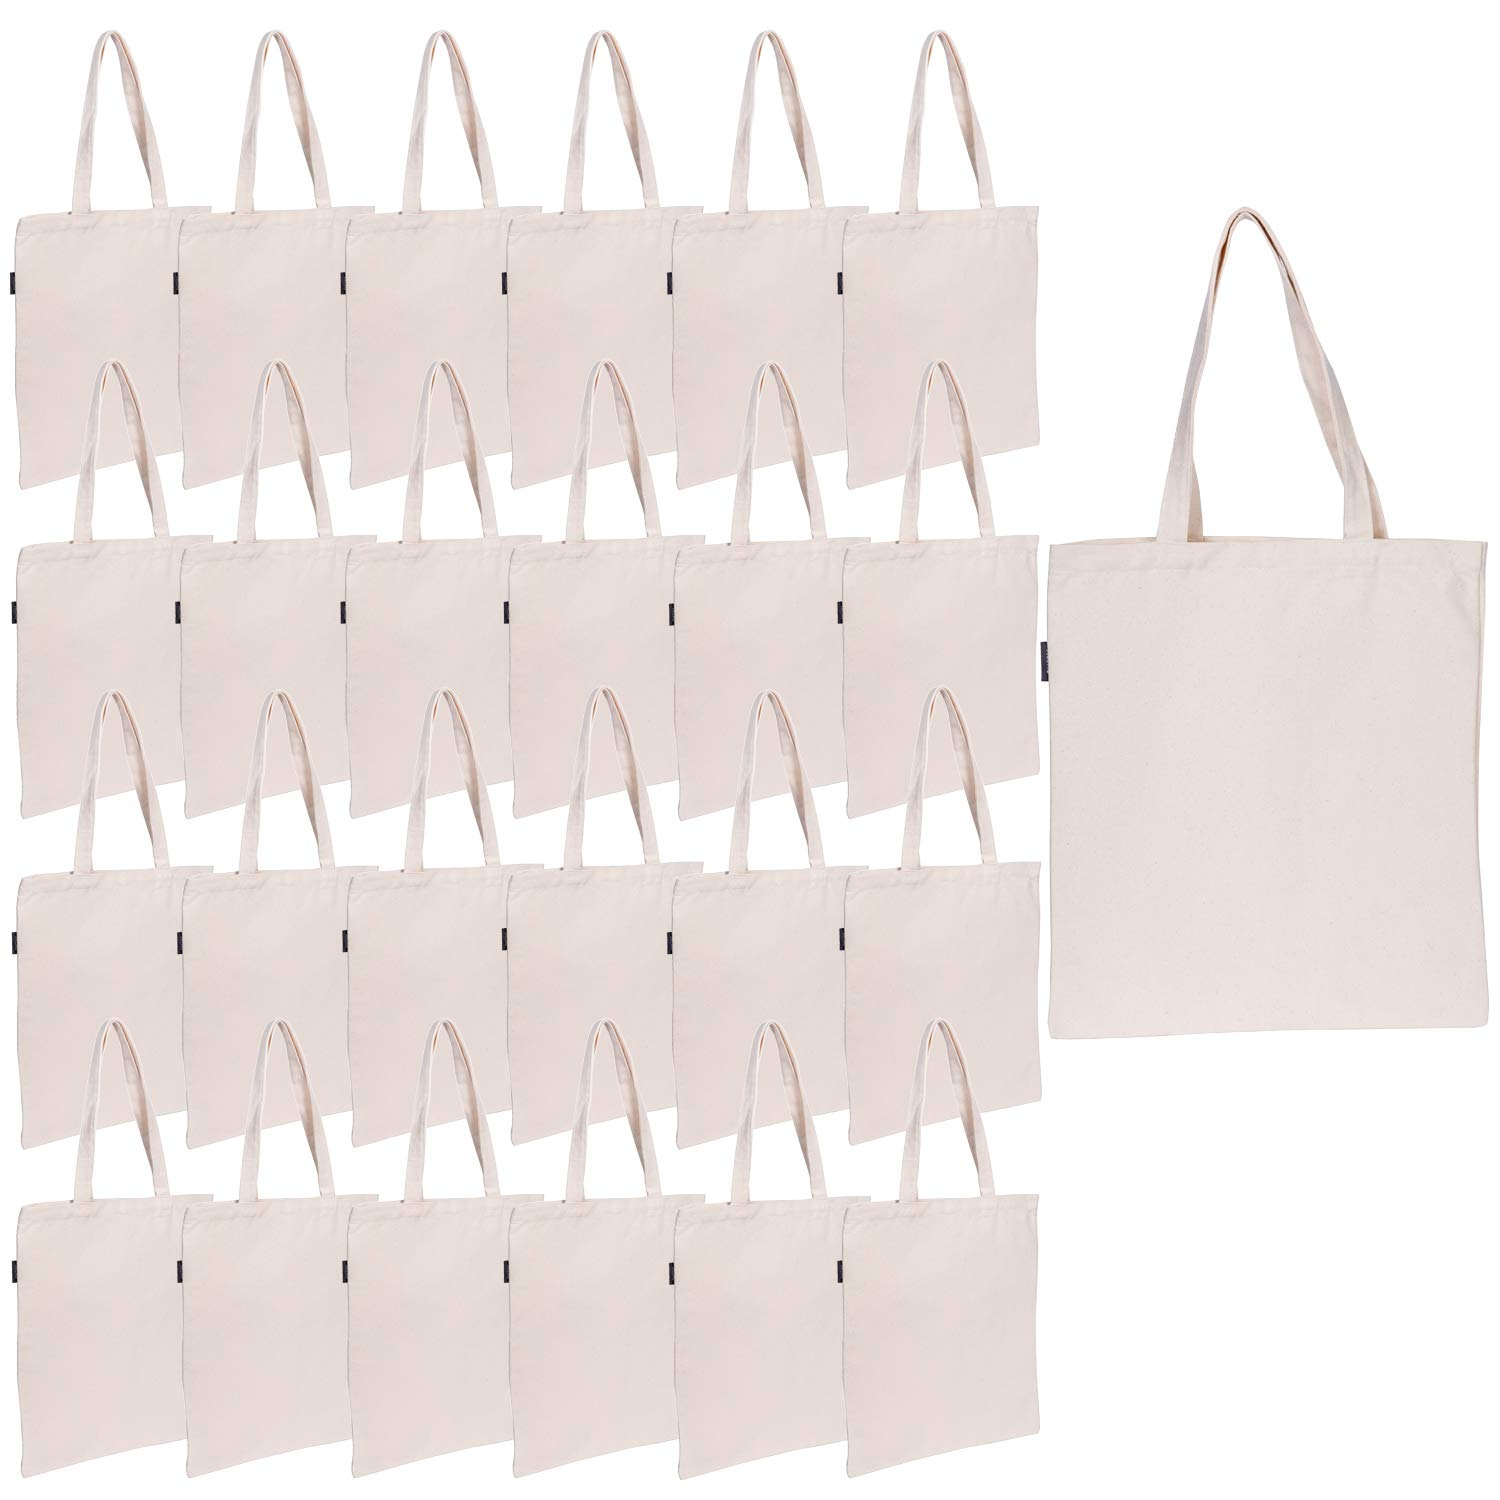 Canvas Tote Bag Bulk | Heavy Duty 12oz 100% Cotton Bag DIY for Crafting and Decorating | 13.4''W X 15.3'' H | Reusable Foldable Grocery Shopping Bag for Travel (25 pack) by JILLMO